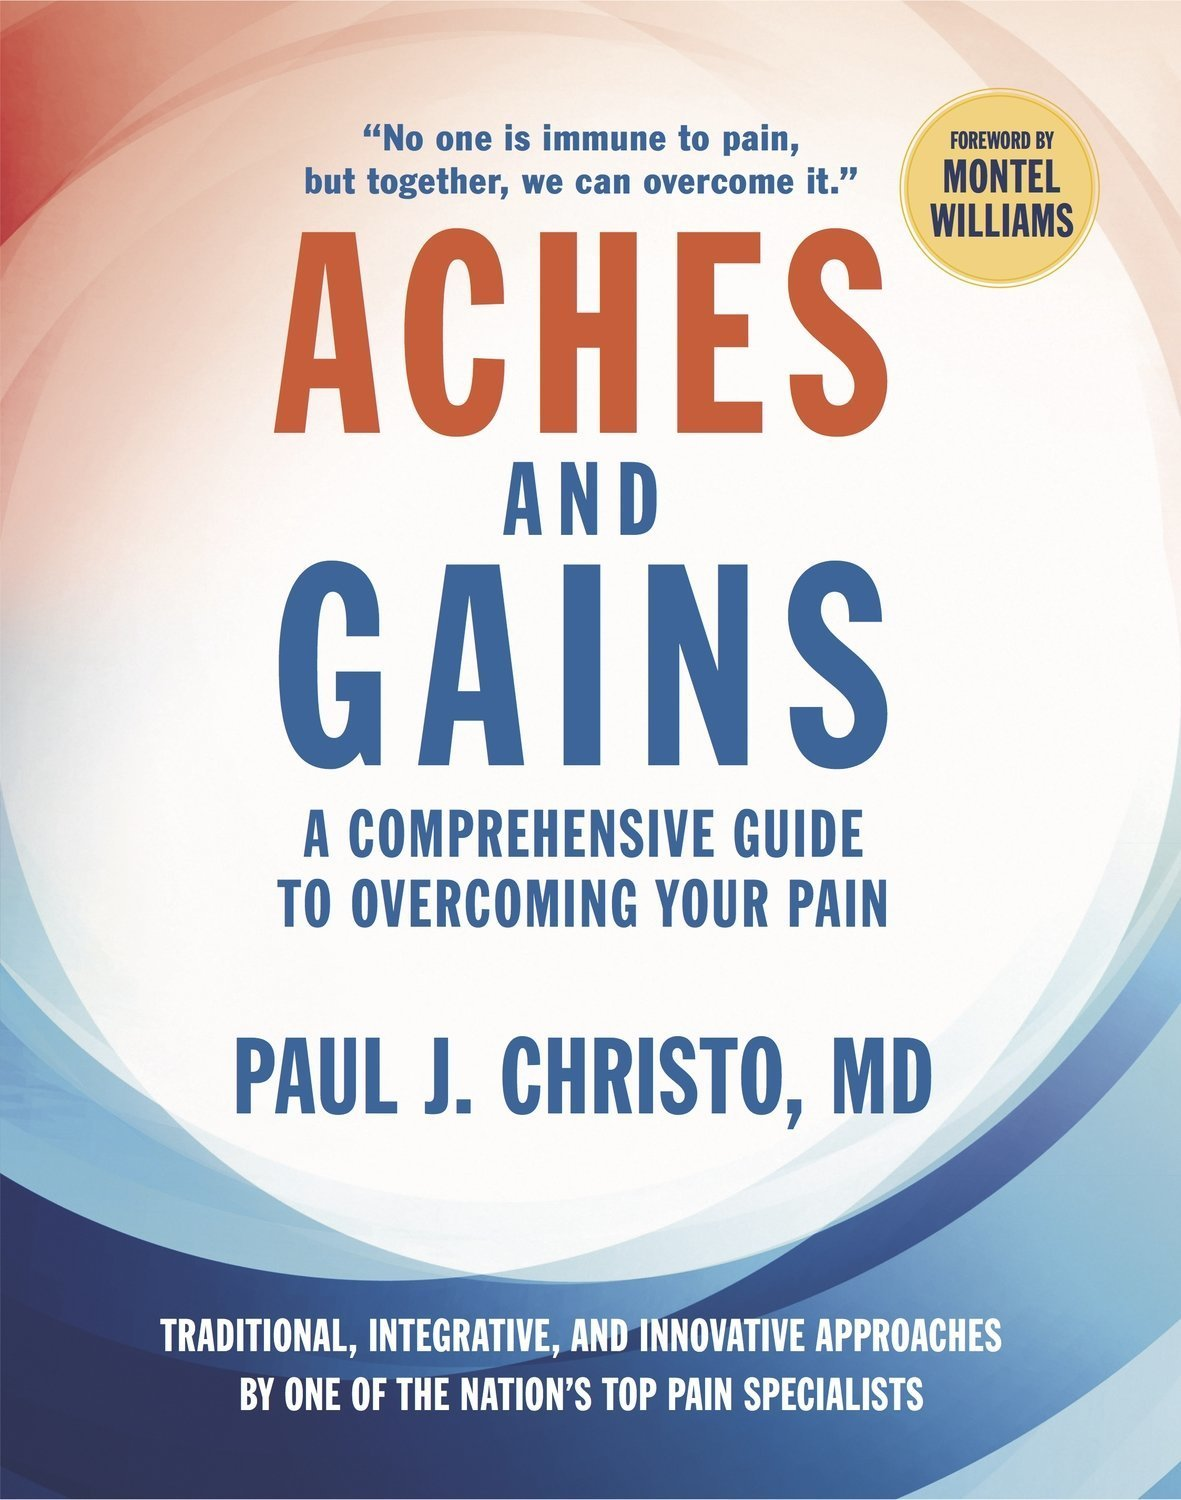 Aches and Gains: A Comprehensive Guide to Overcoming Your Pain - Men's Health